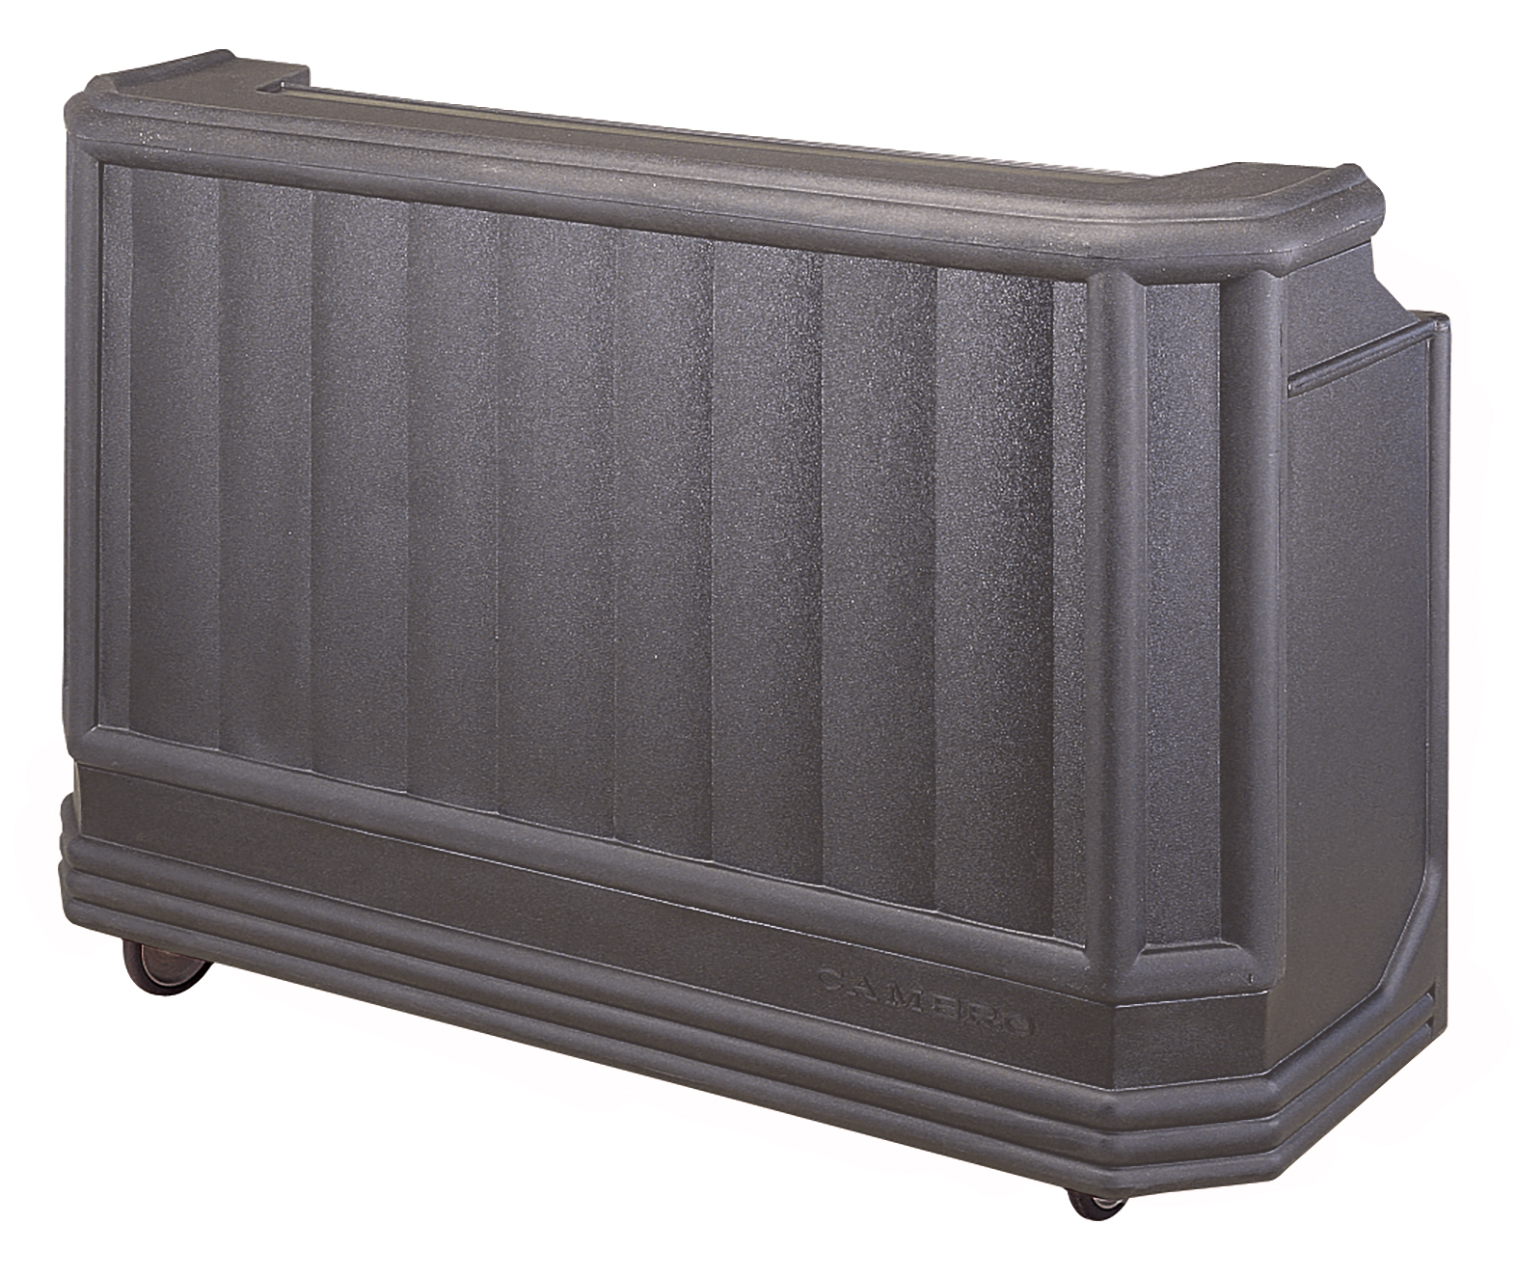 Cambro BAR730PMT191 portable bar